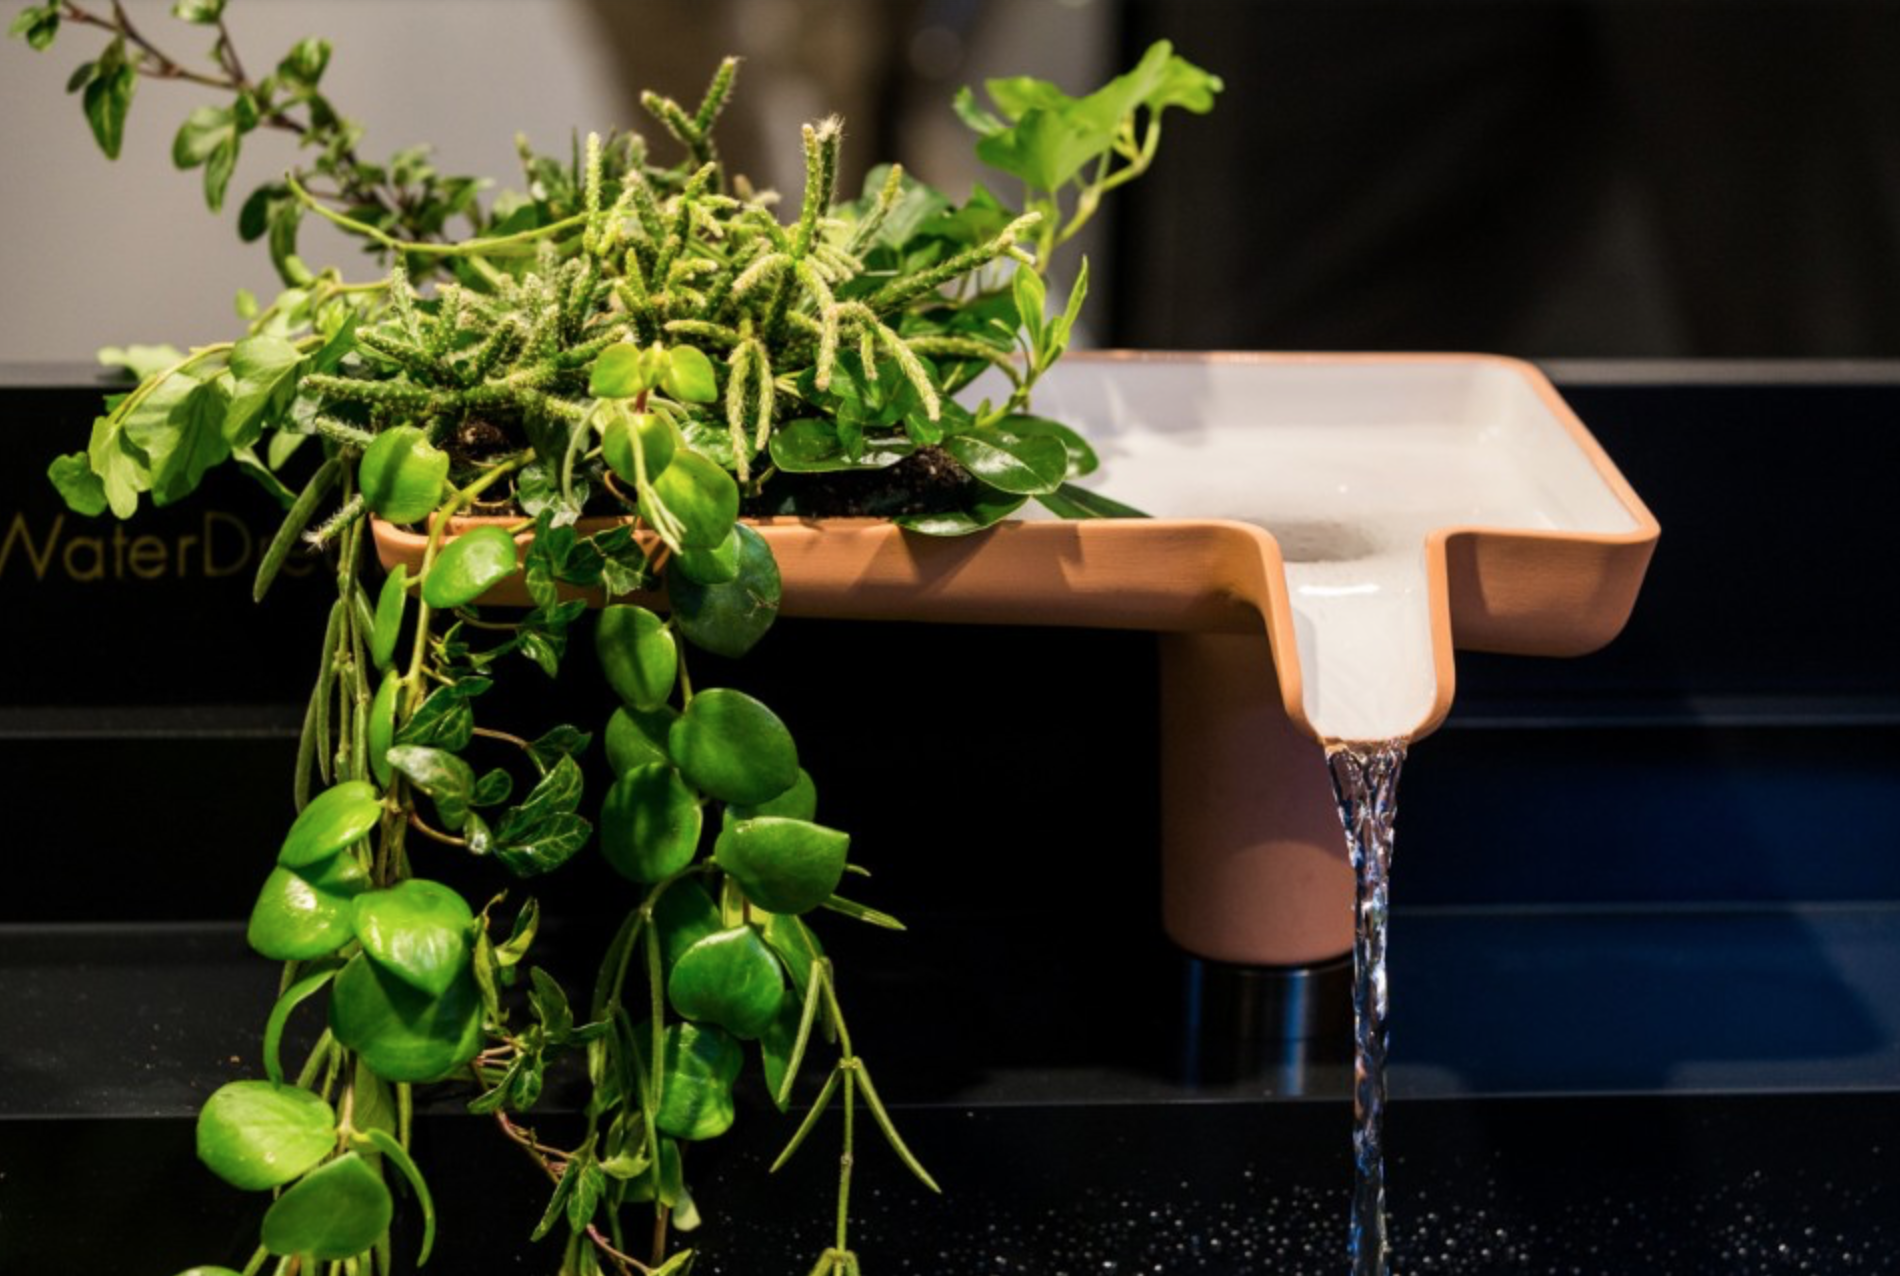 Ceramic faucet with greenery